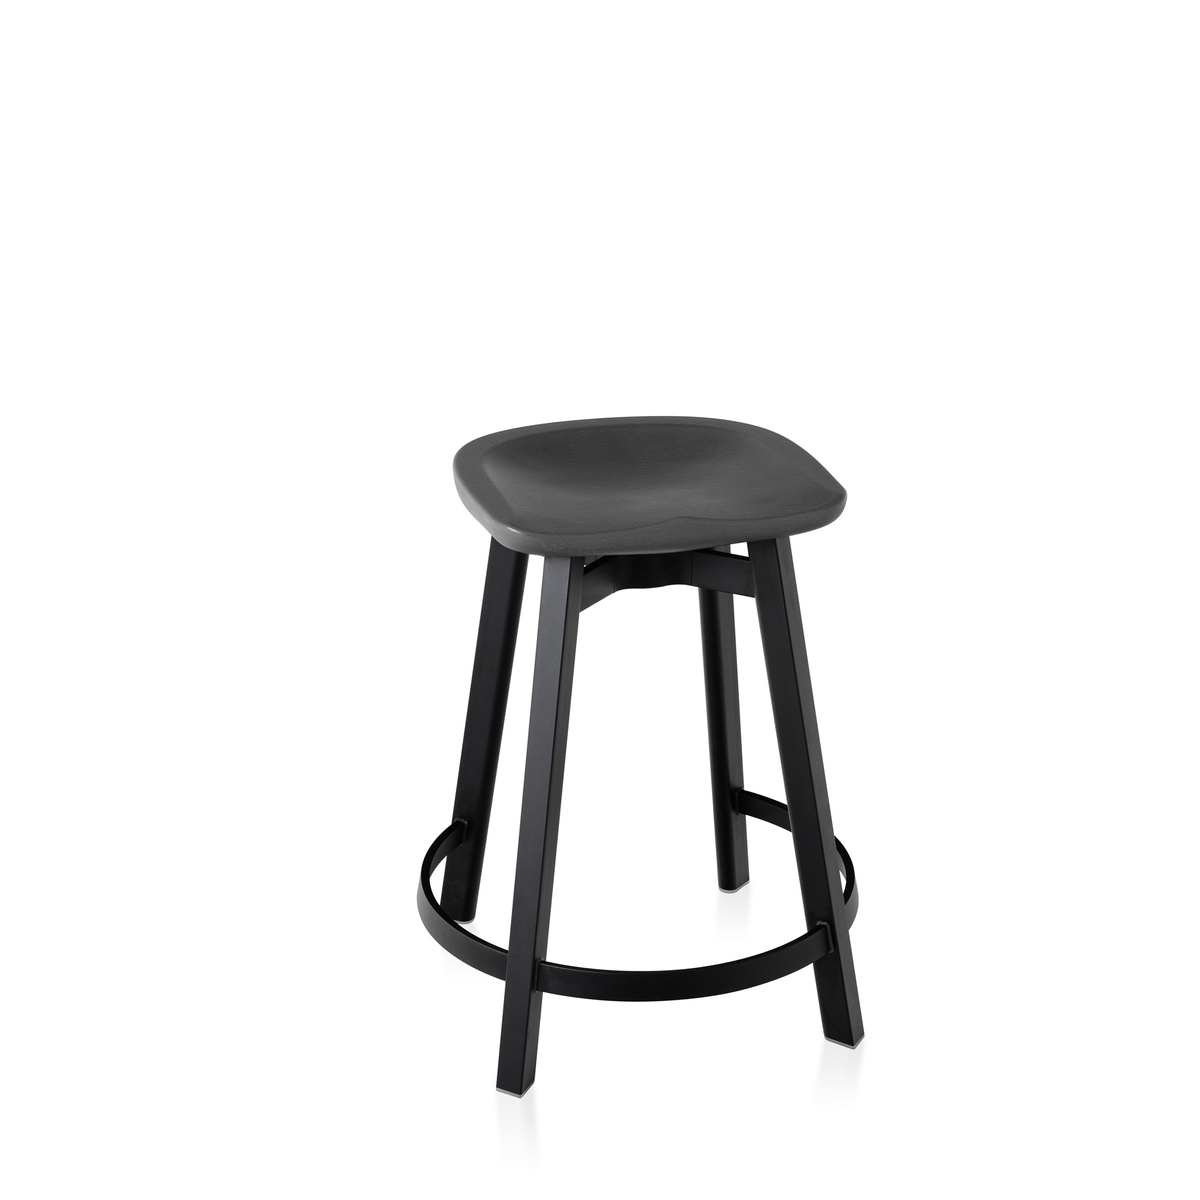 Su Counter Stool Recycled Polyethylene Seat